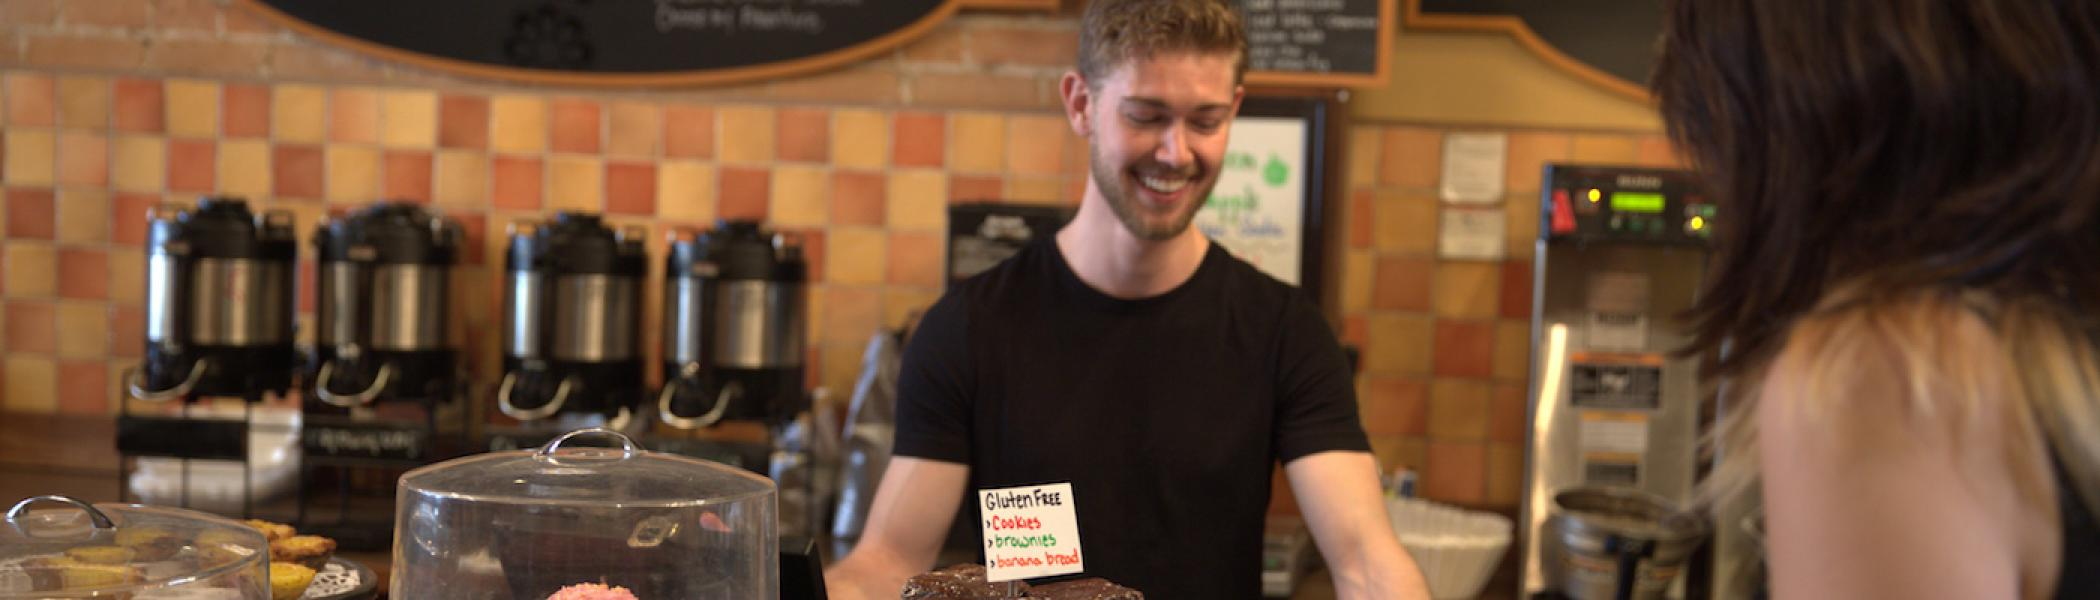 A guy working at a coffee shop smiling at a customer